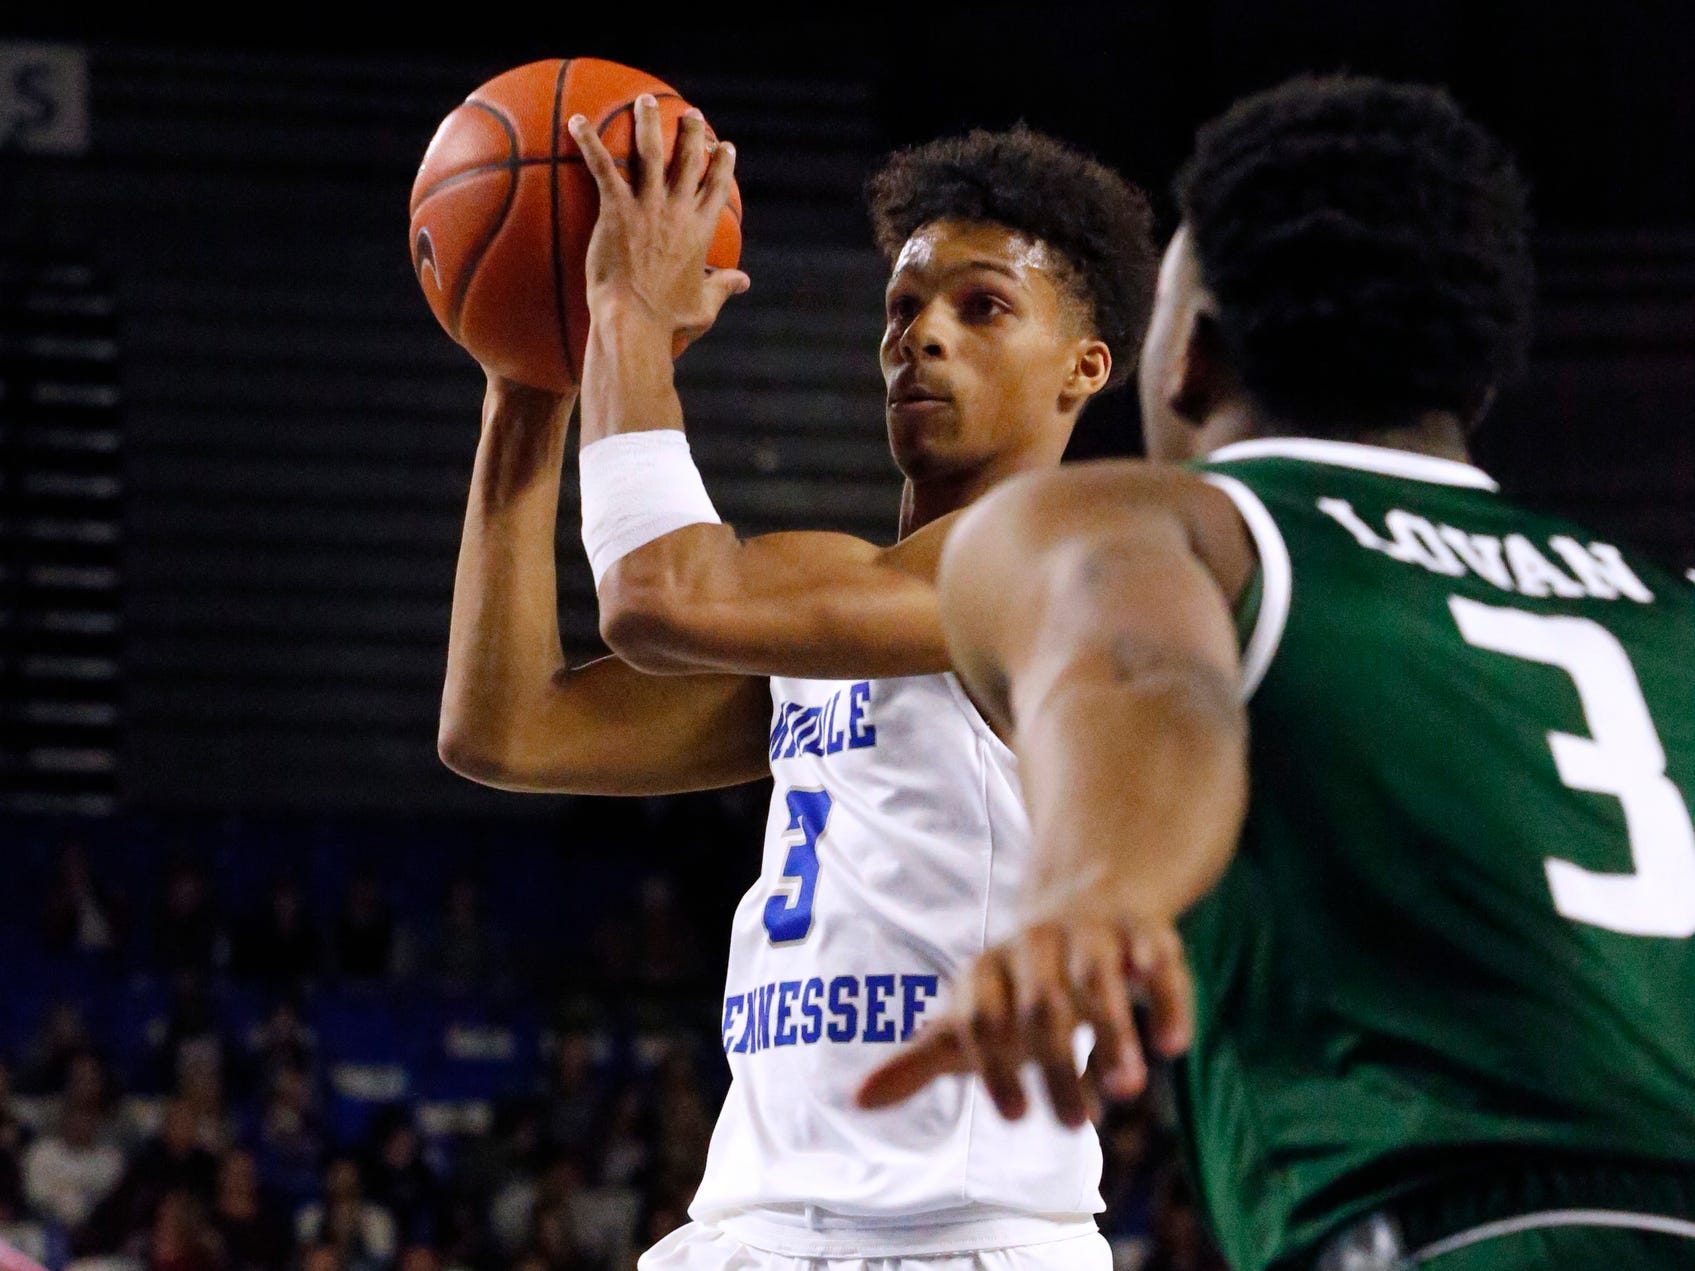 MTSU guard Donovan Sims (3) goes up for a shot as UAB guard Tavin Lovan (3) guards him on Wednesday Jan. 30, 2019.